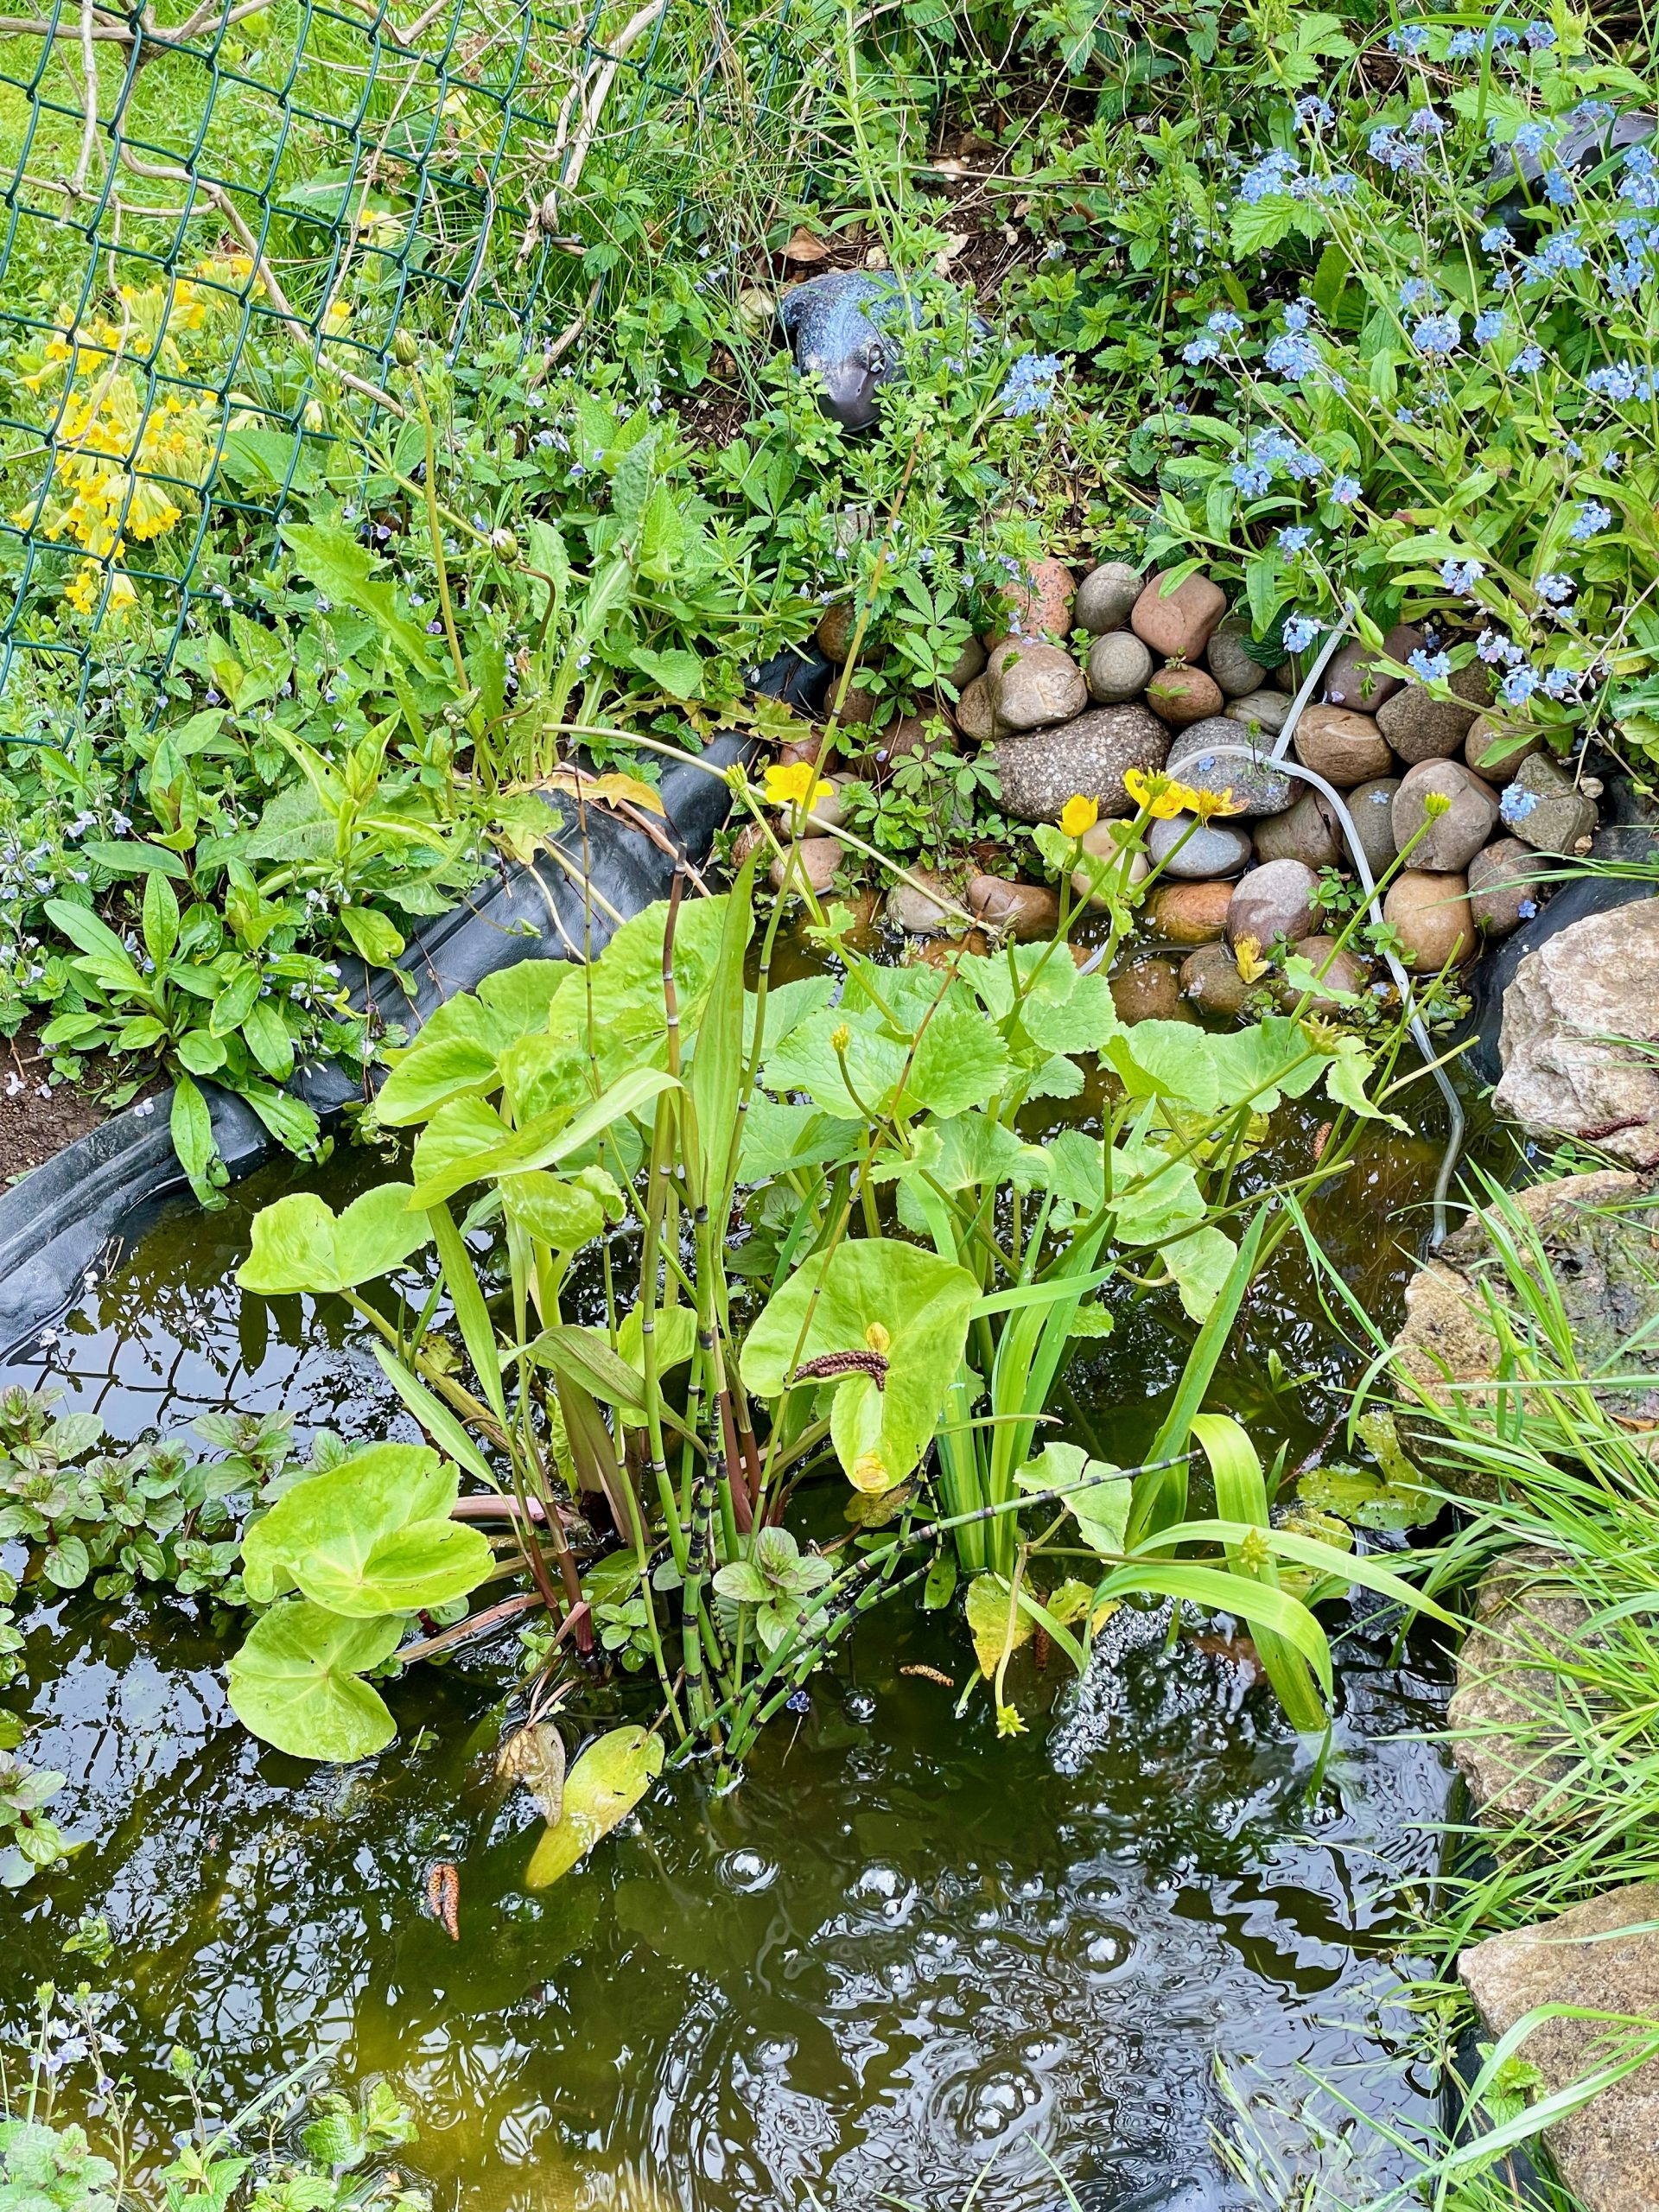 Our little lockdown pond is teeming with life